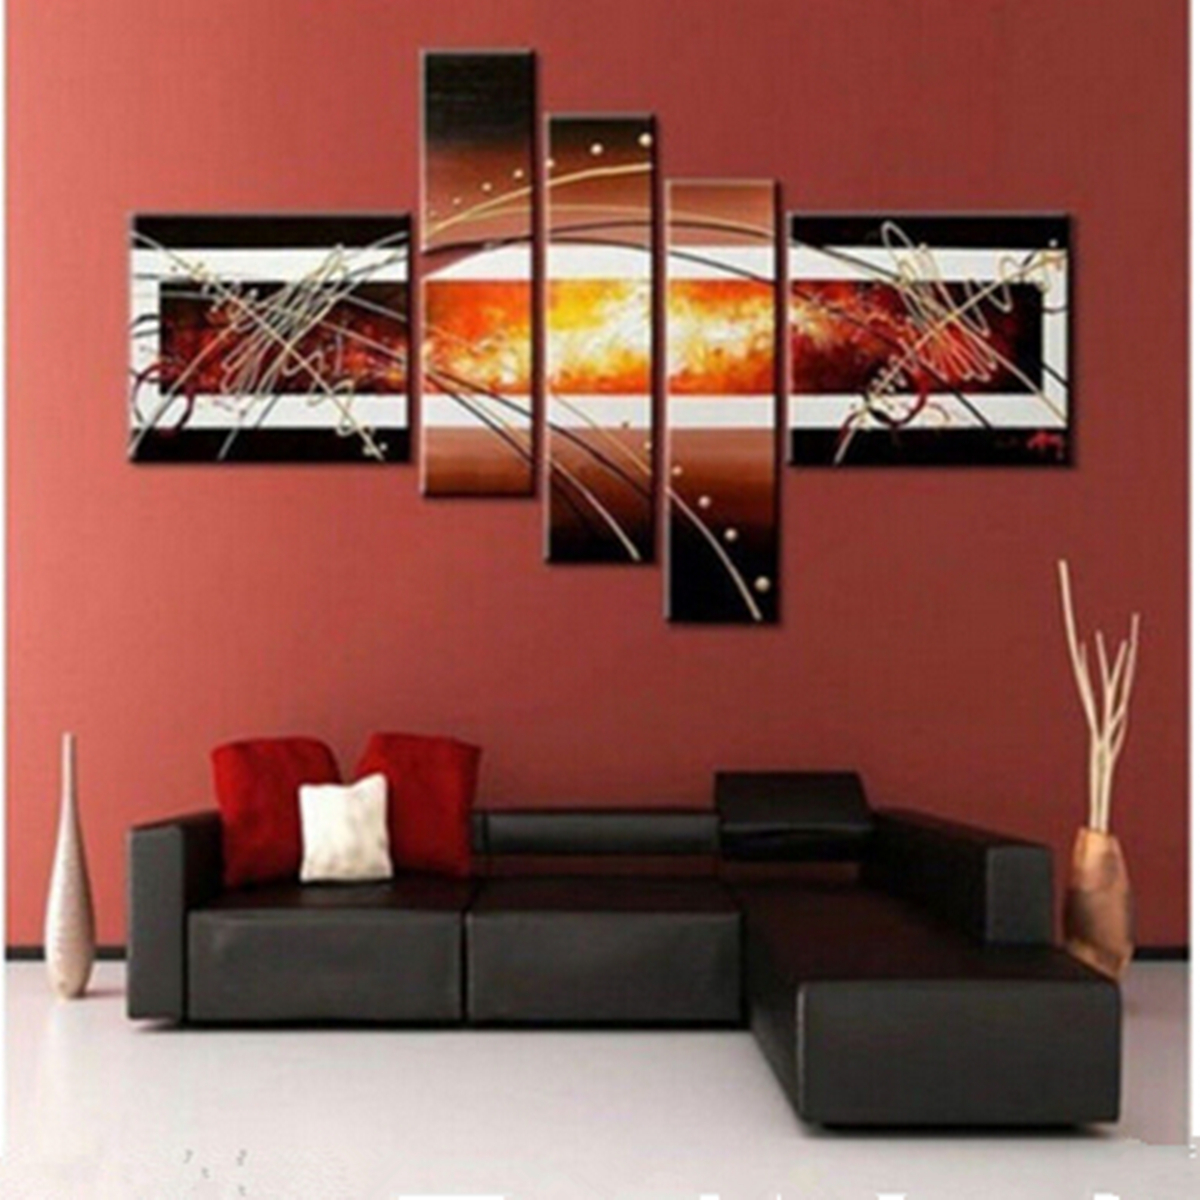 Oil Paint Wall Design : Lots modern abstract canvas art wall decor oil painting no